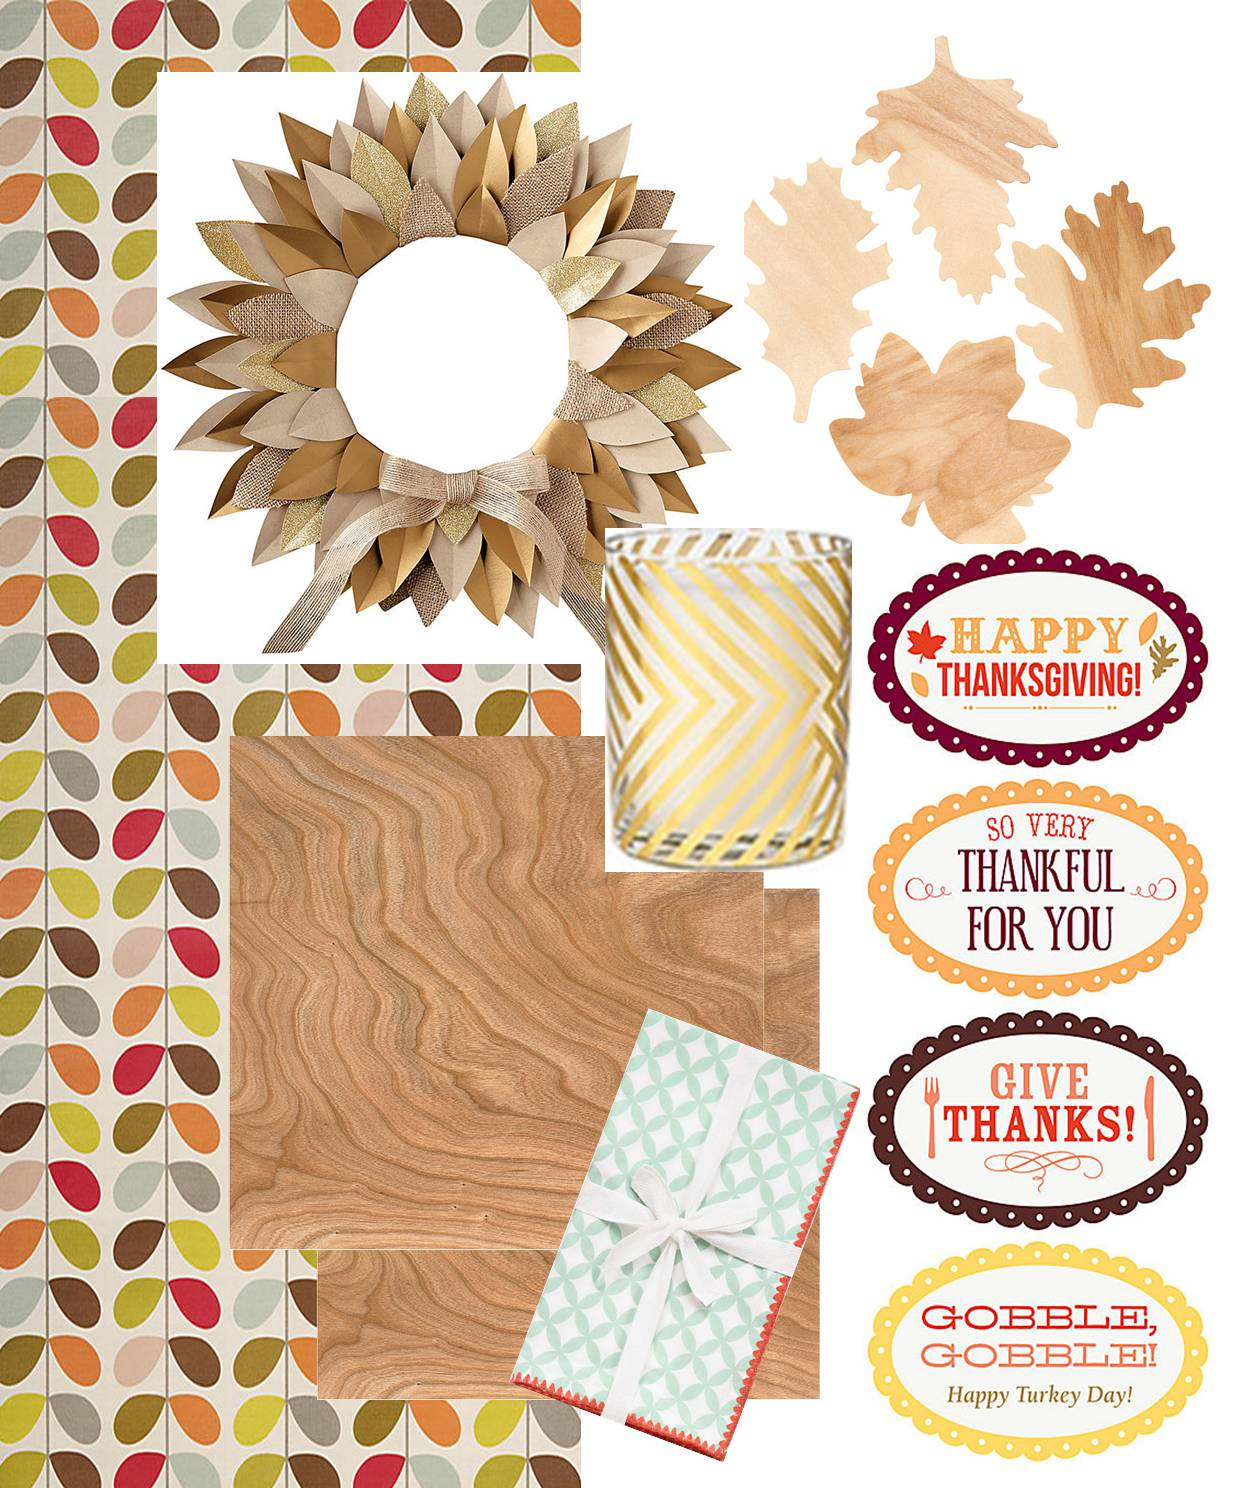 I Love Using Wrapping Paper As A Table Runner And This Multi Stem Flower Wrapping  Paper Is The Perfect Color And Pattern For A Festive Thanksgiving Table.